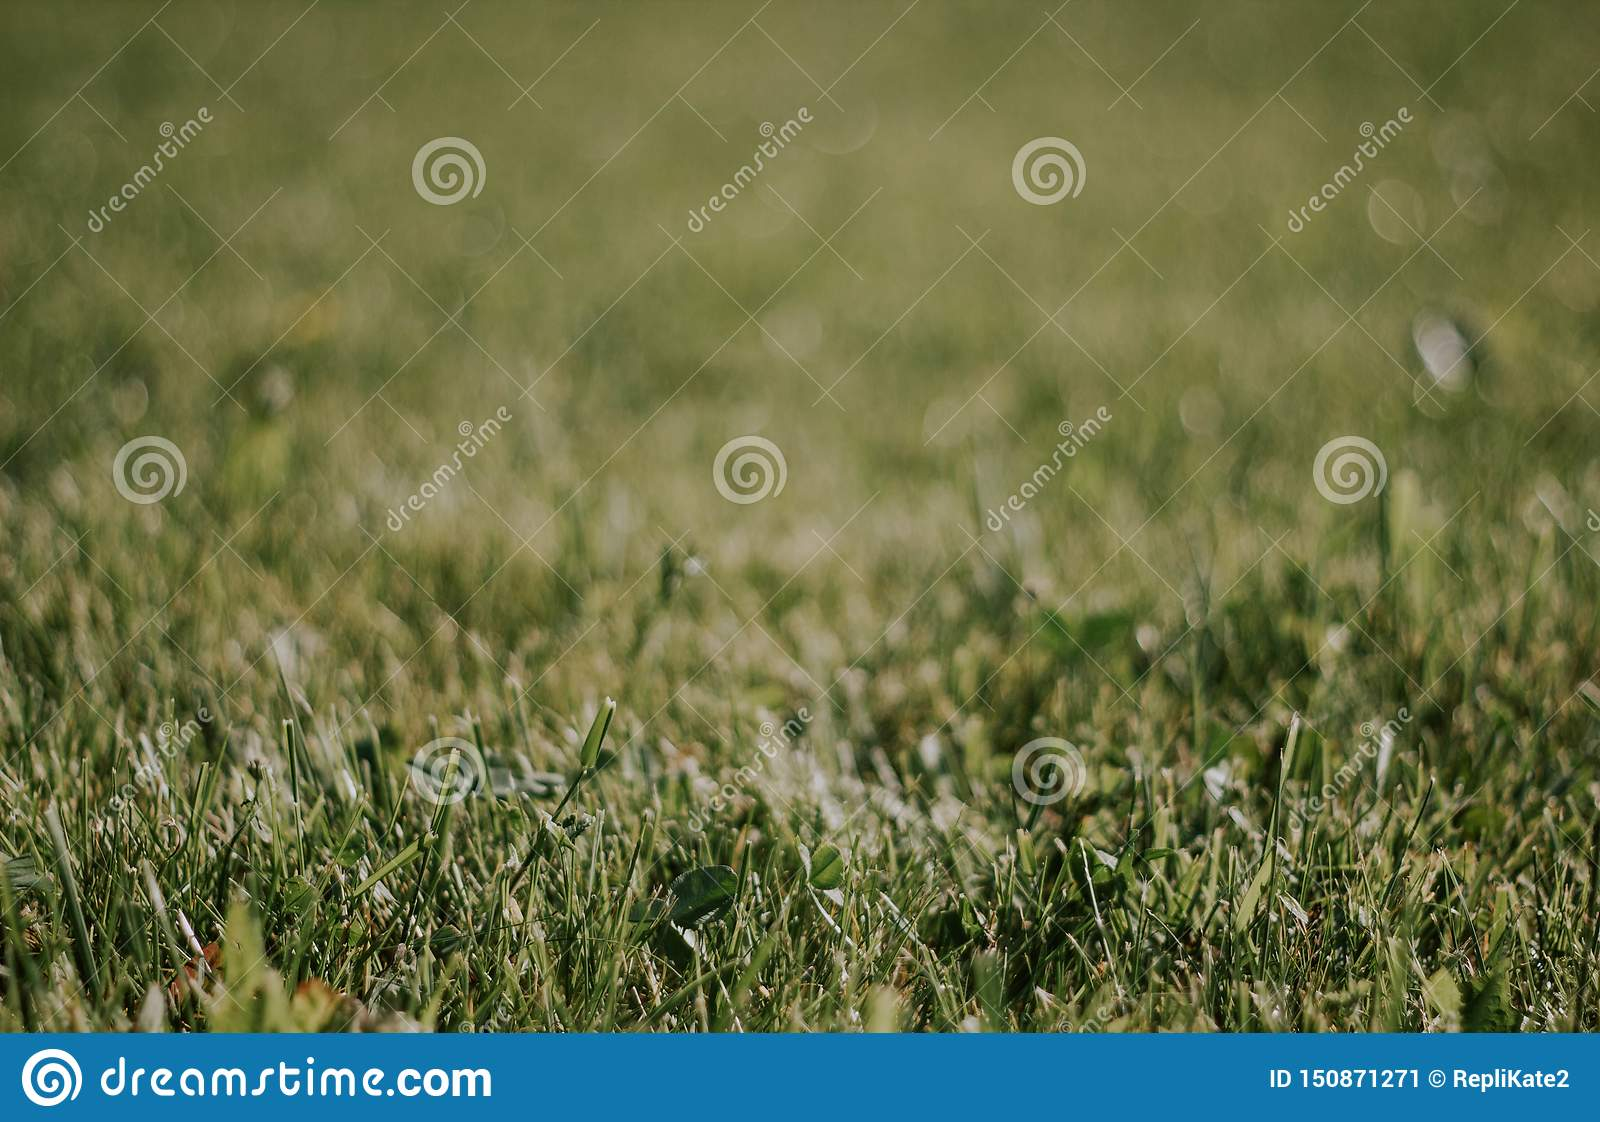 Green grass close-up. Beautiful lawn. The texture of green grass on the field. Background with grass